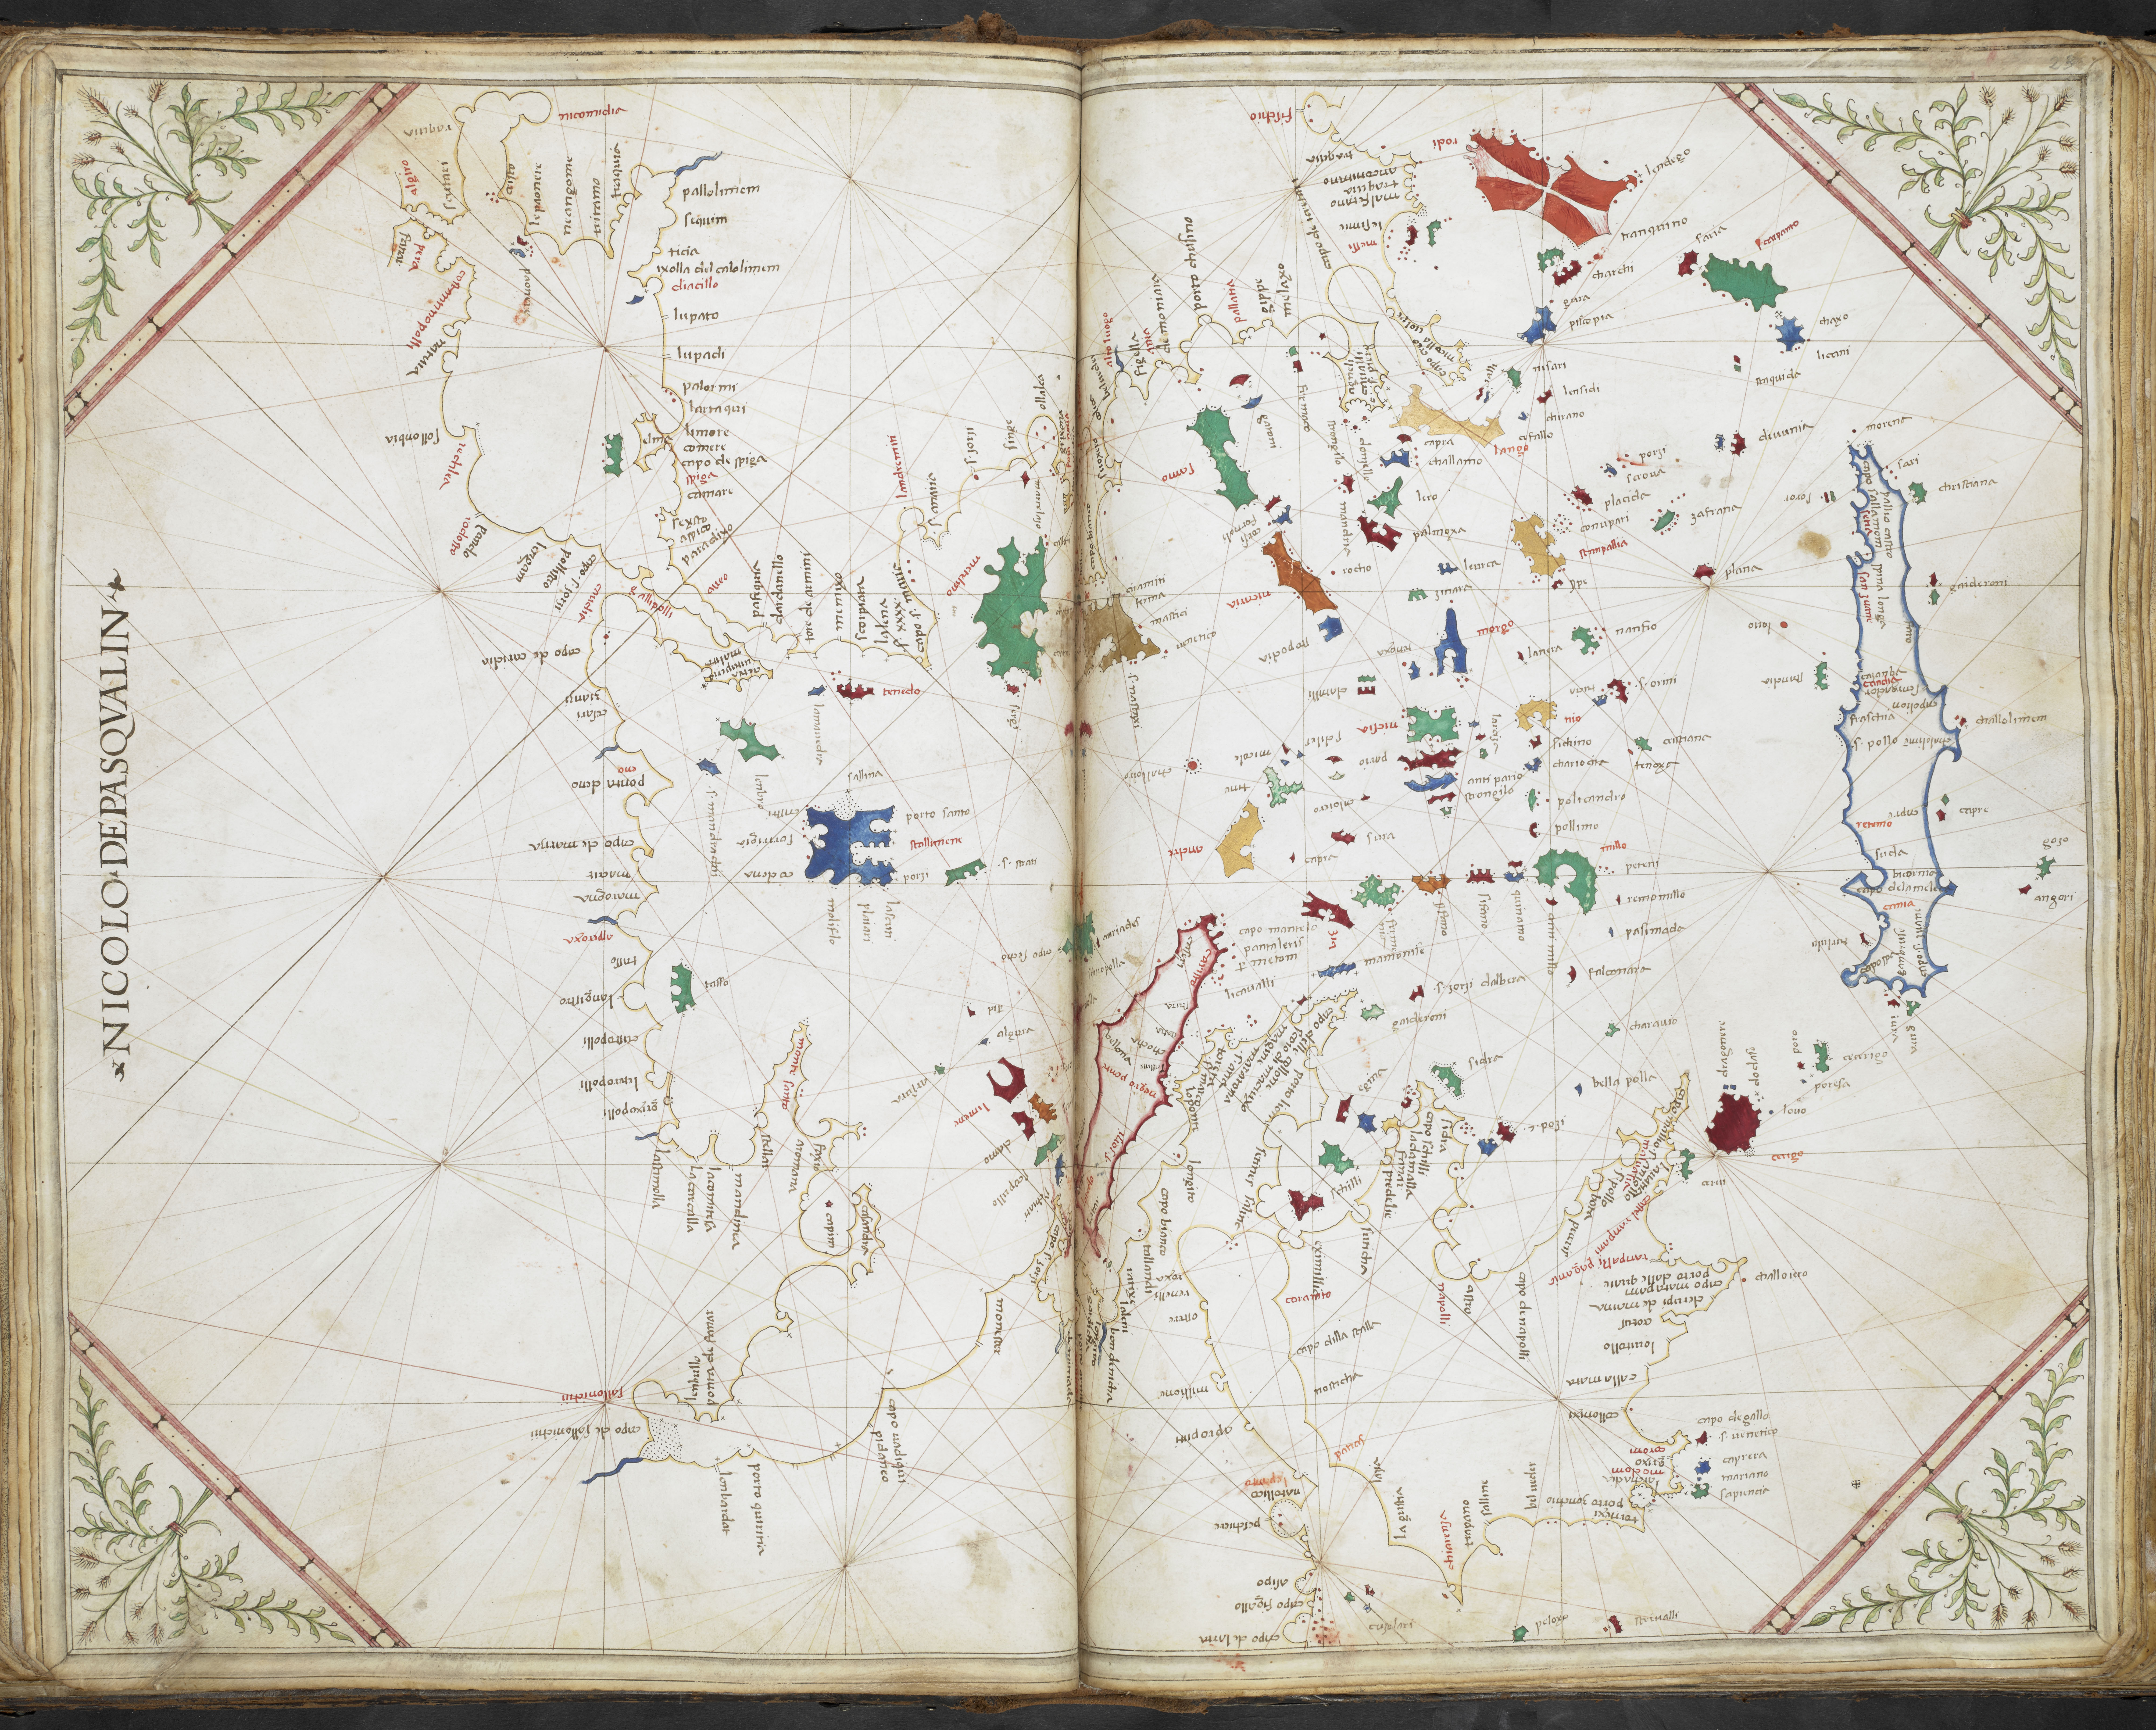 Early 15th century chart of the Aegean from the Cornaro atlas.